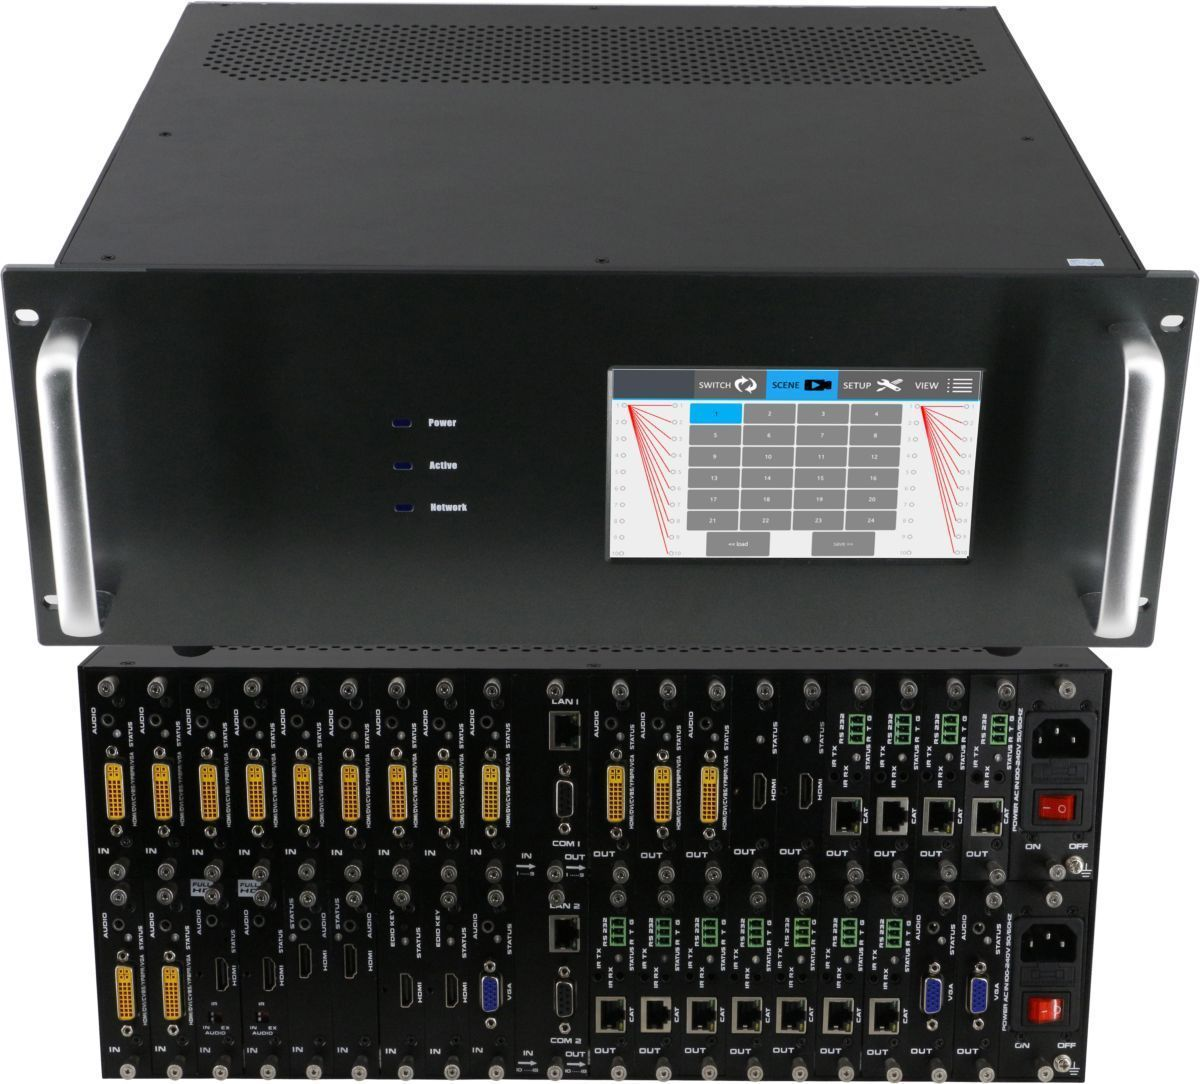 4K 18x8 HDMI Matrix Switcher with Color Touchscreen